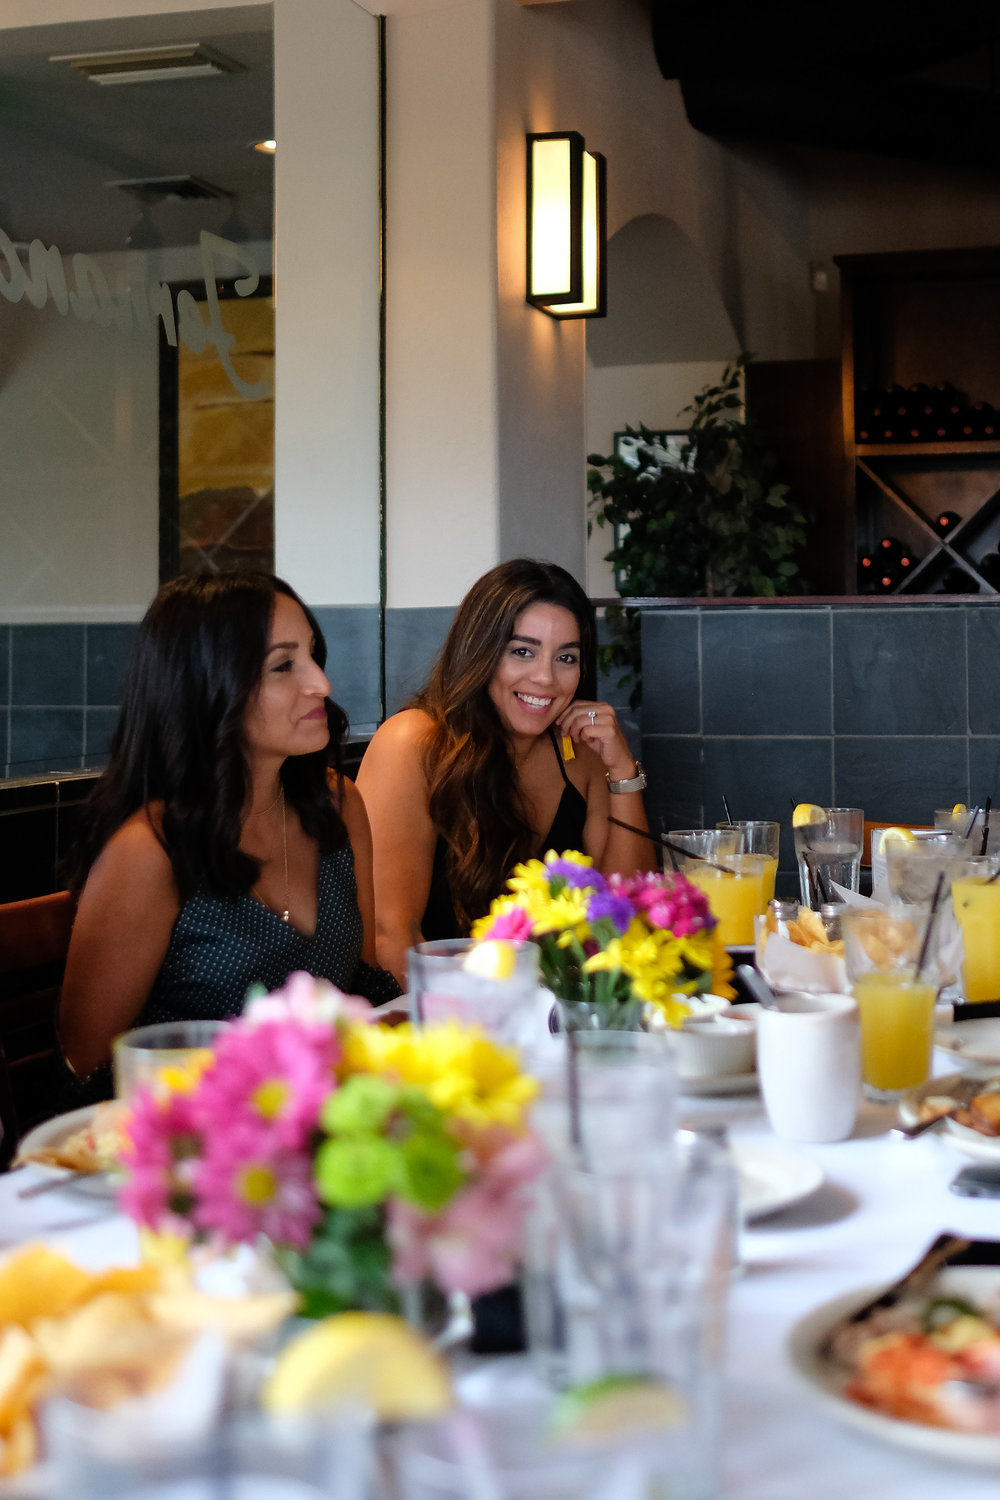 LatinaBloggerBrunch_0135.jpg